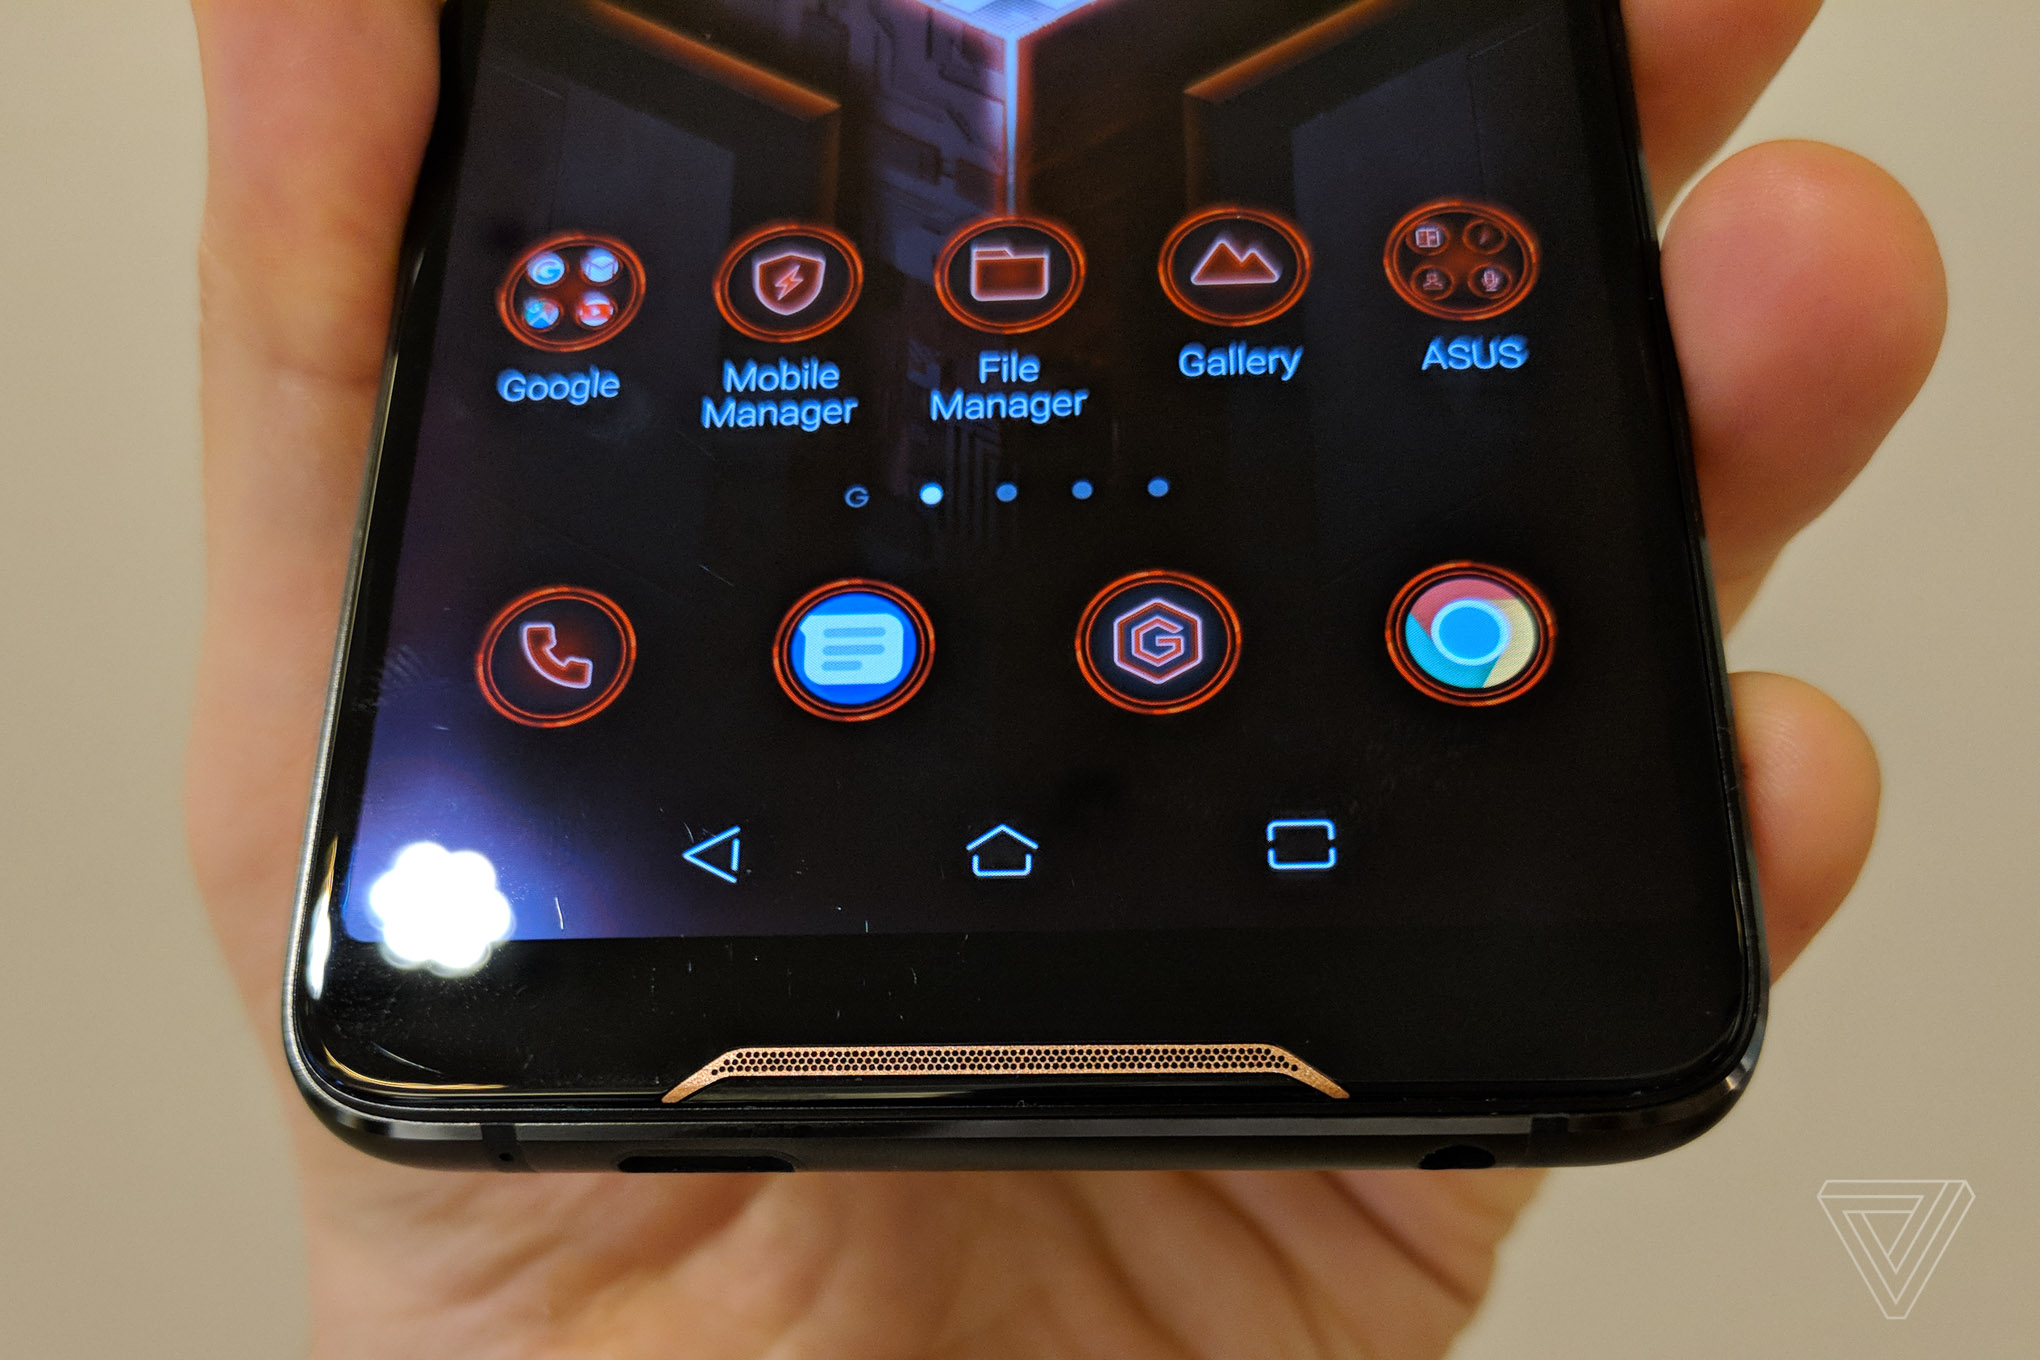 Asus' ROG Phone is the latest attempt to make gaming phones happen